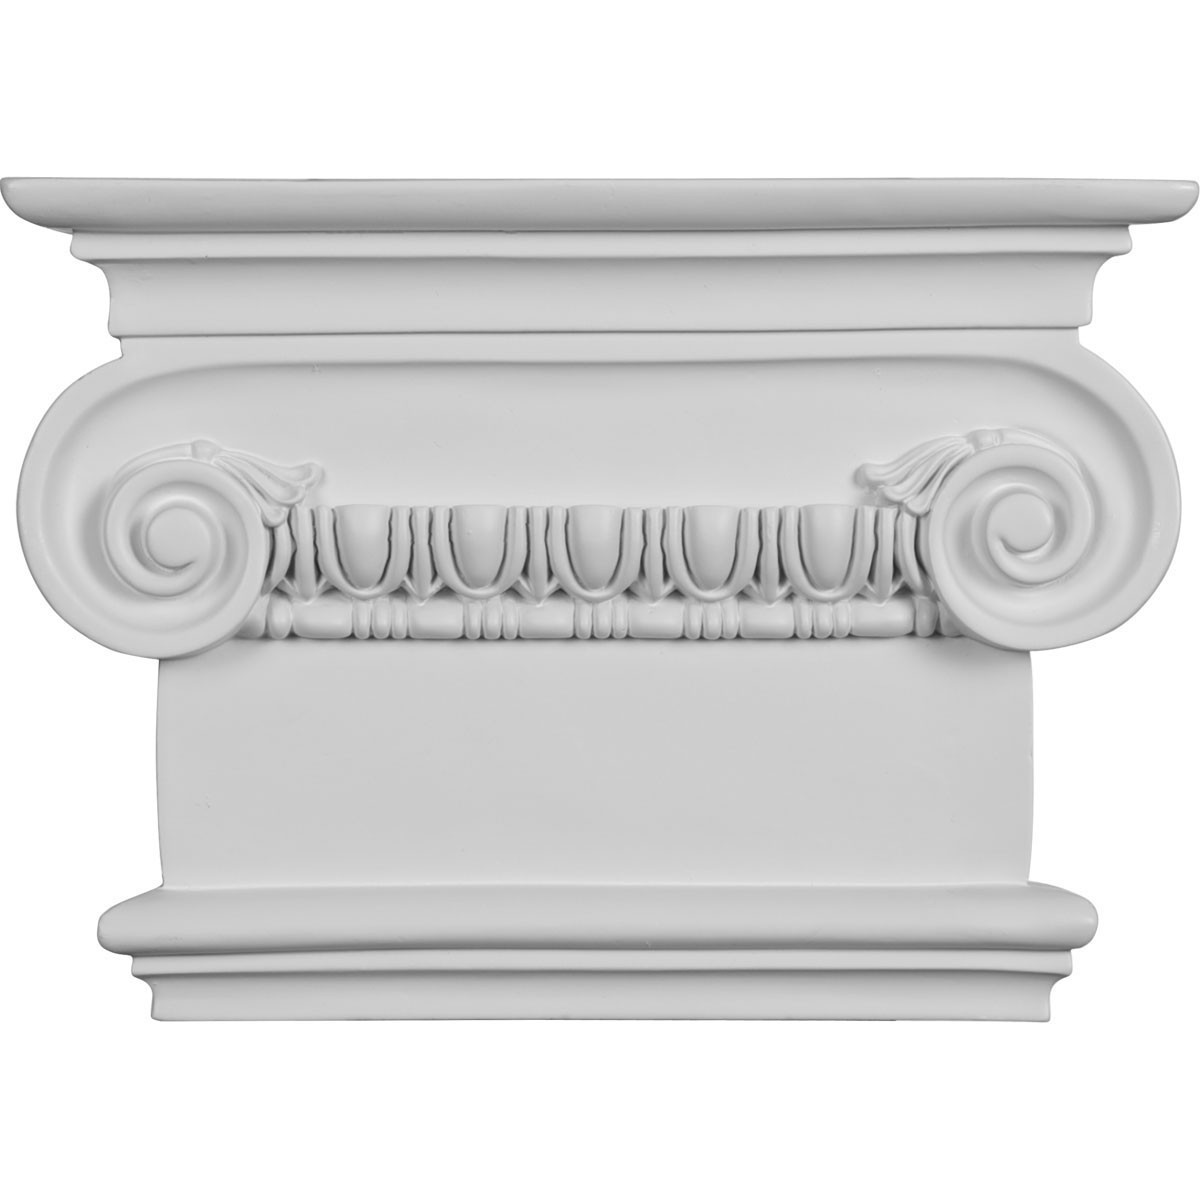 """EM-CAP09X07X03RI - 7 1/2""""W x 8 1/2""""H x 2 1/2""""P Classic Ionic Large Onlay Capital (Fits Pilasters up to 5 1/4""""W x 1 1/8""""D)"""